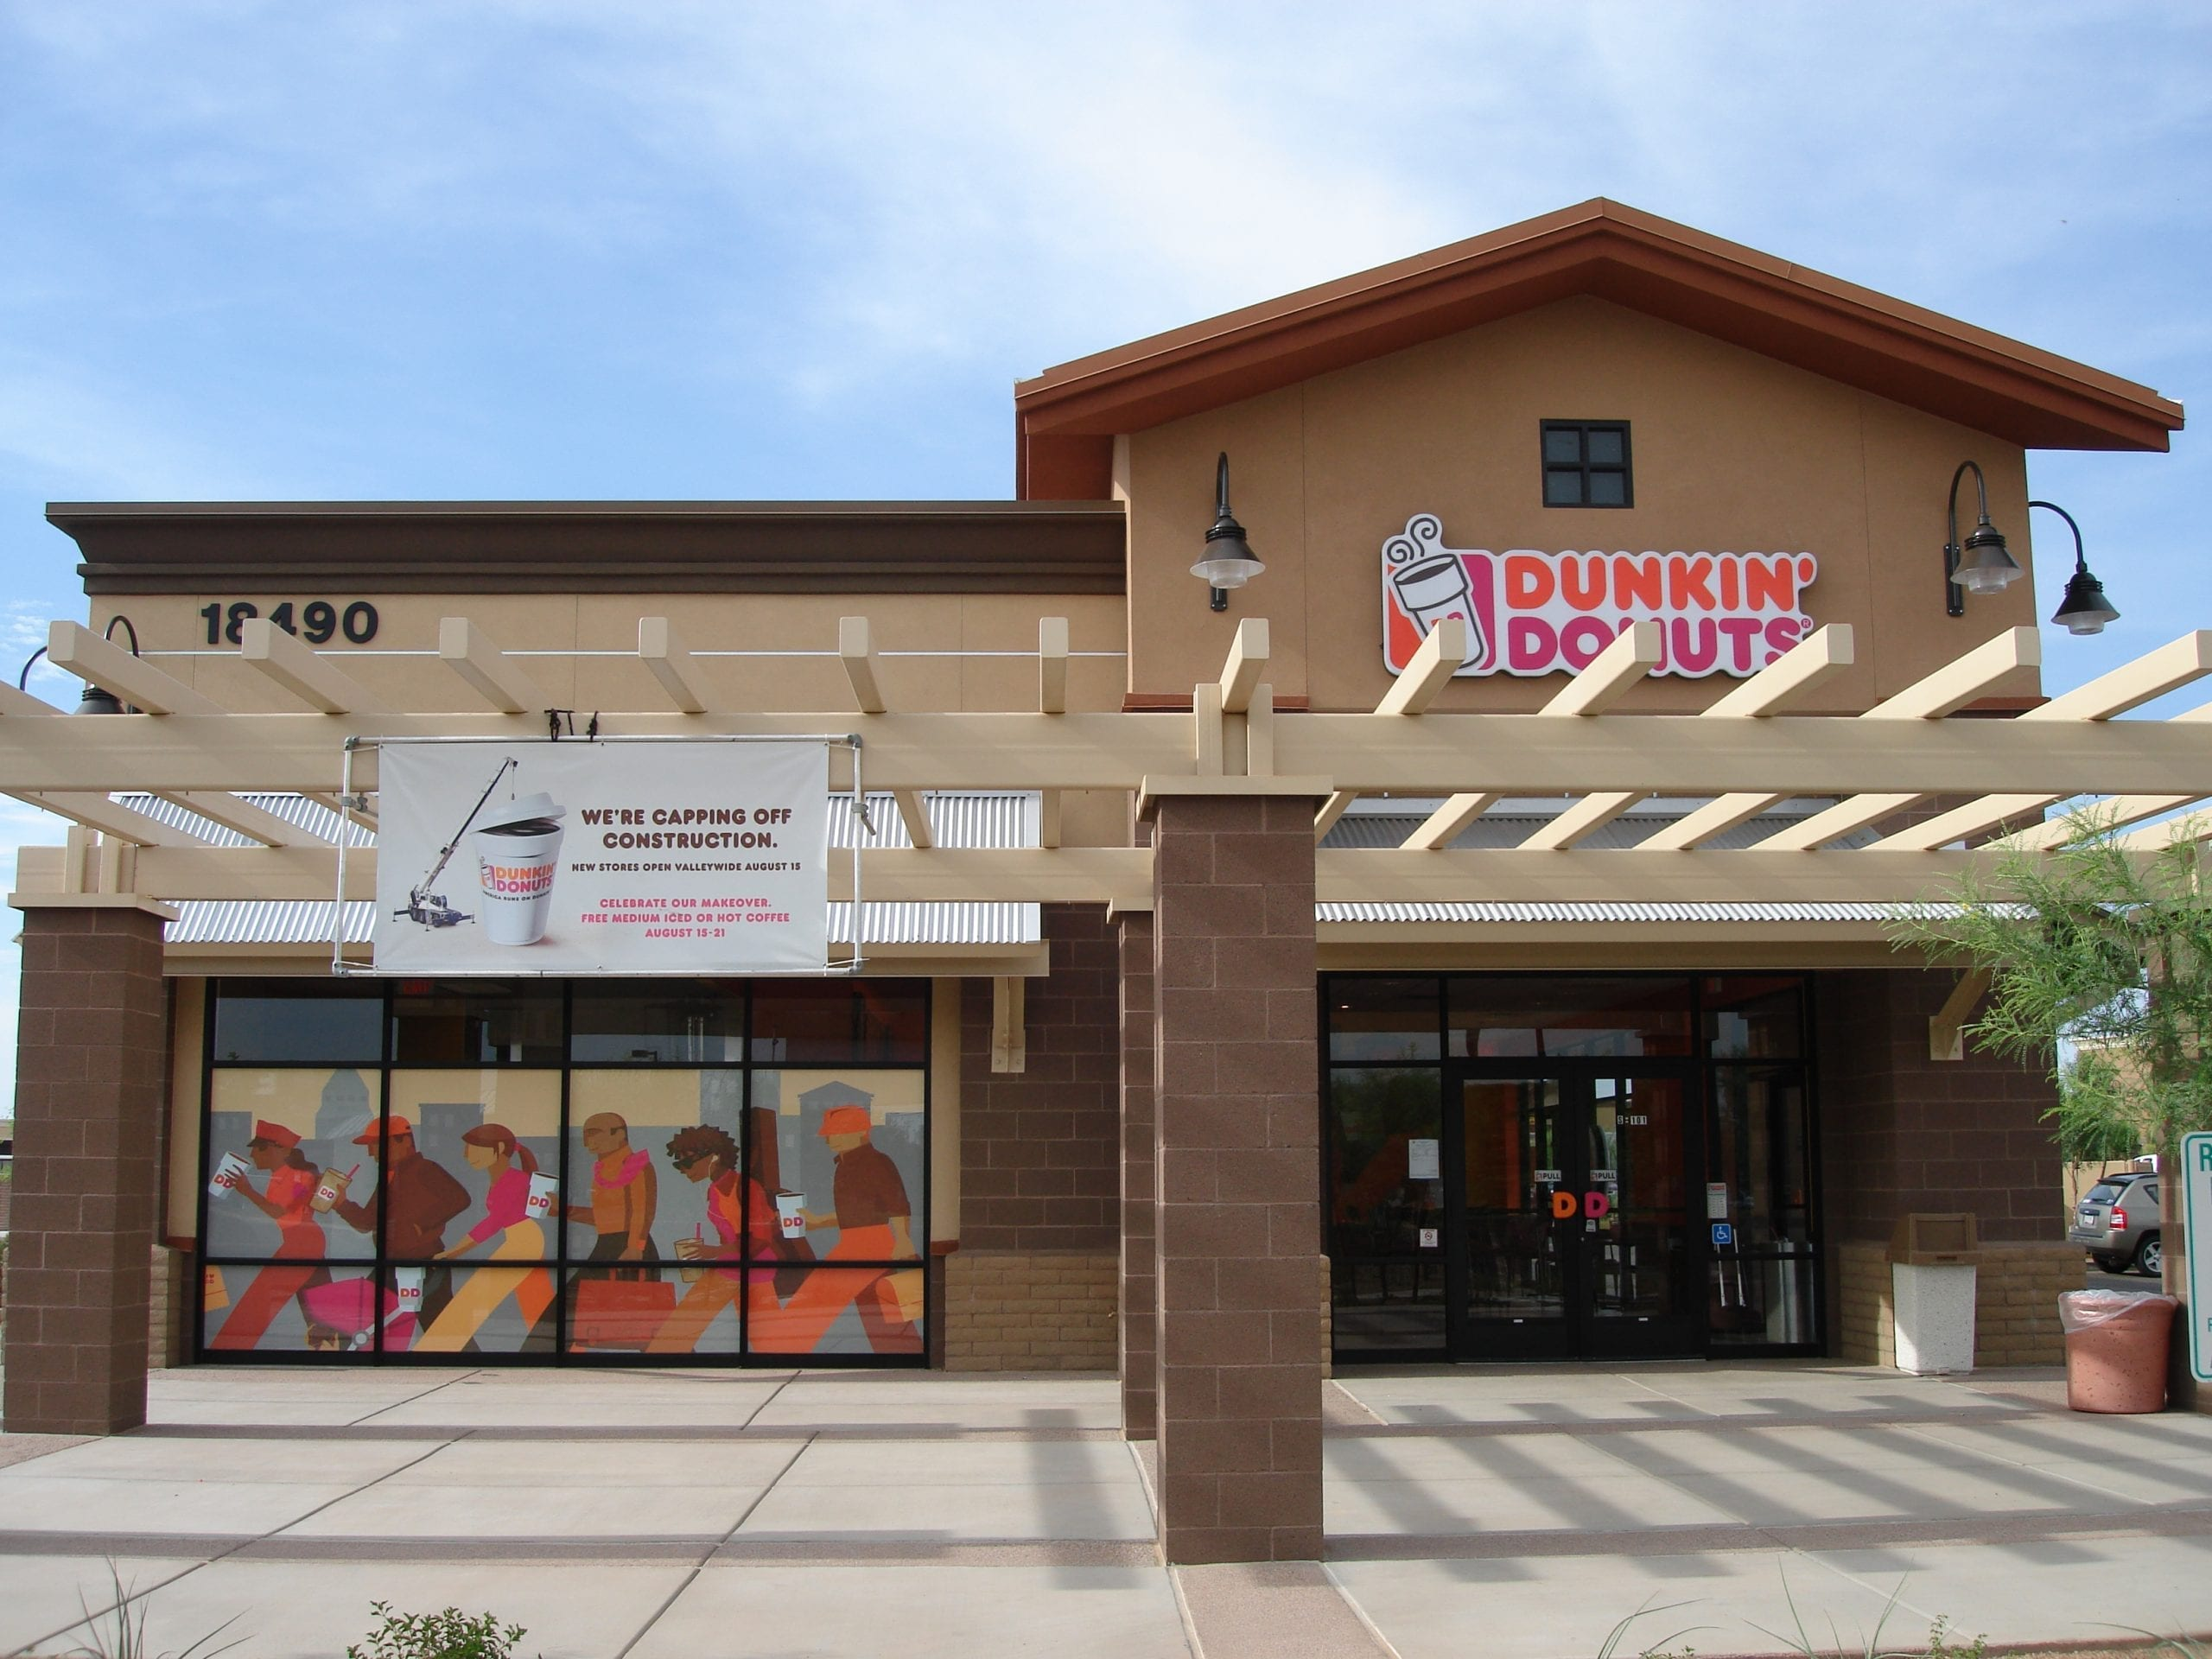 Dunkin Donuts construction management